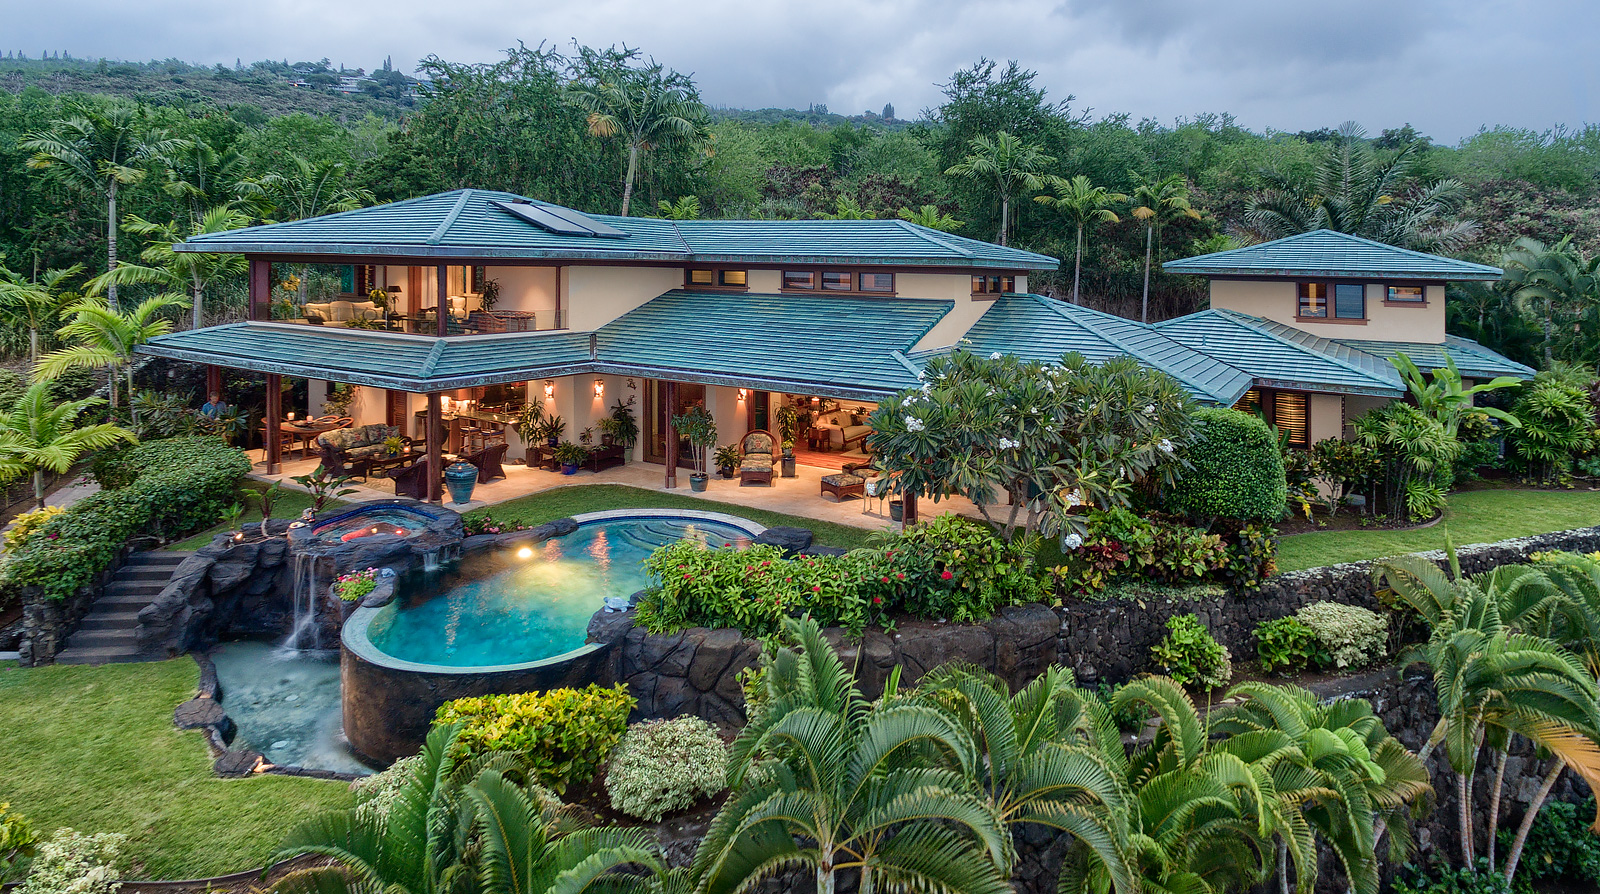 hawaii home design. Bayview Estates  MLS 296602 2 688 million 3 857 SqFt 4BR 4 Full and Half Baths Hawaii Homes with Tropical Landscape Design Real Estate